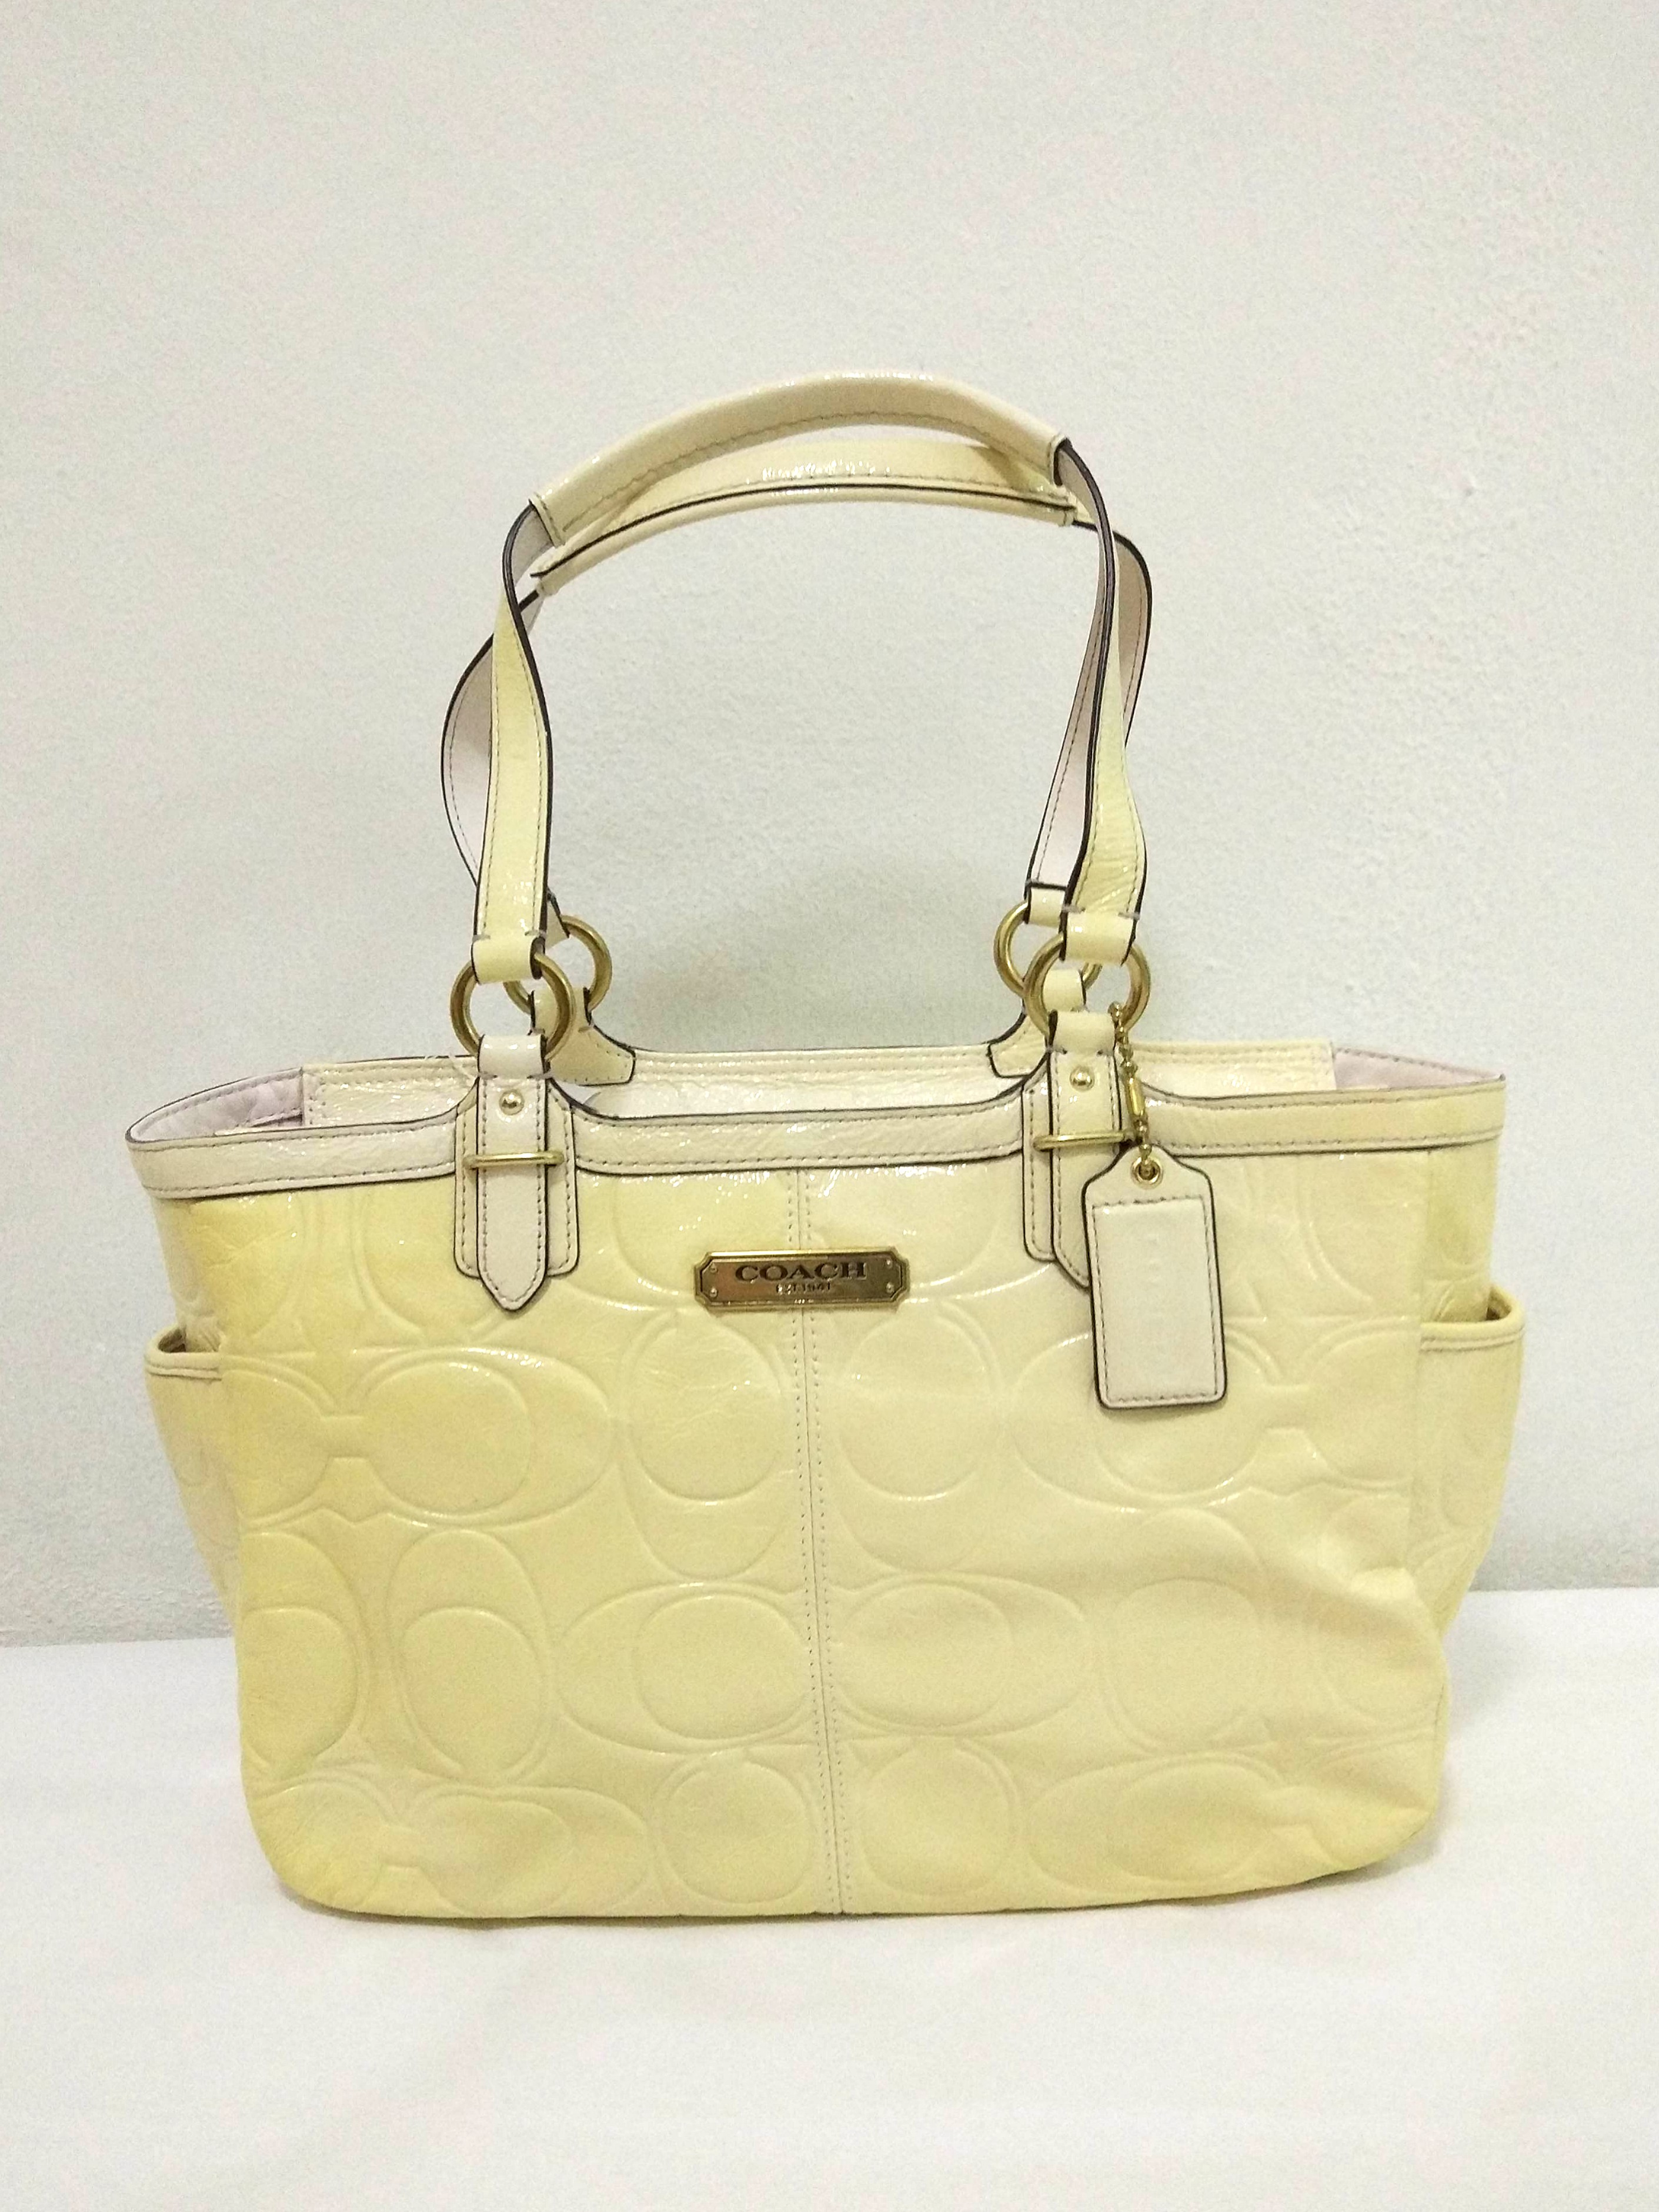 5e4ce5560fba8 ... germany bnwt coach handbag authentic coach tote bag coach embossed  patent bbb7c 09ac6